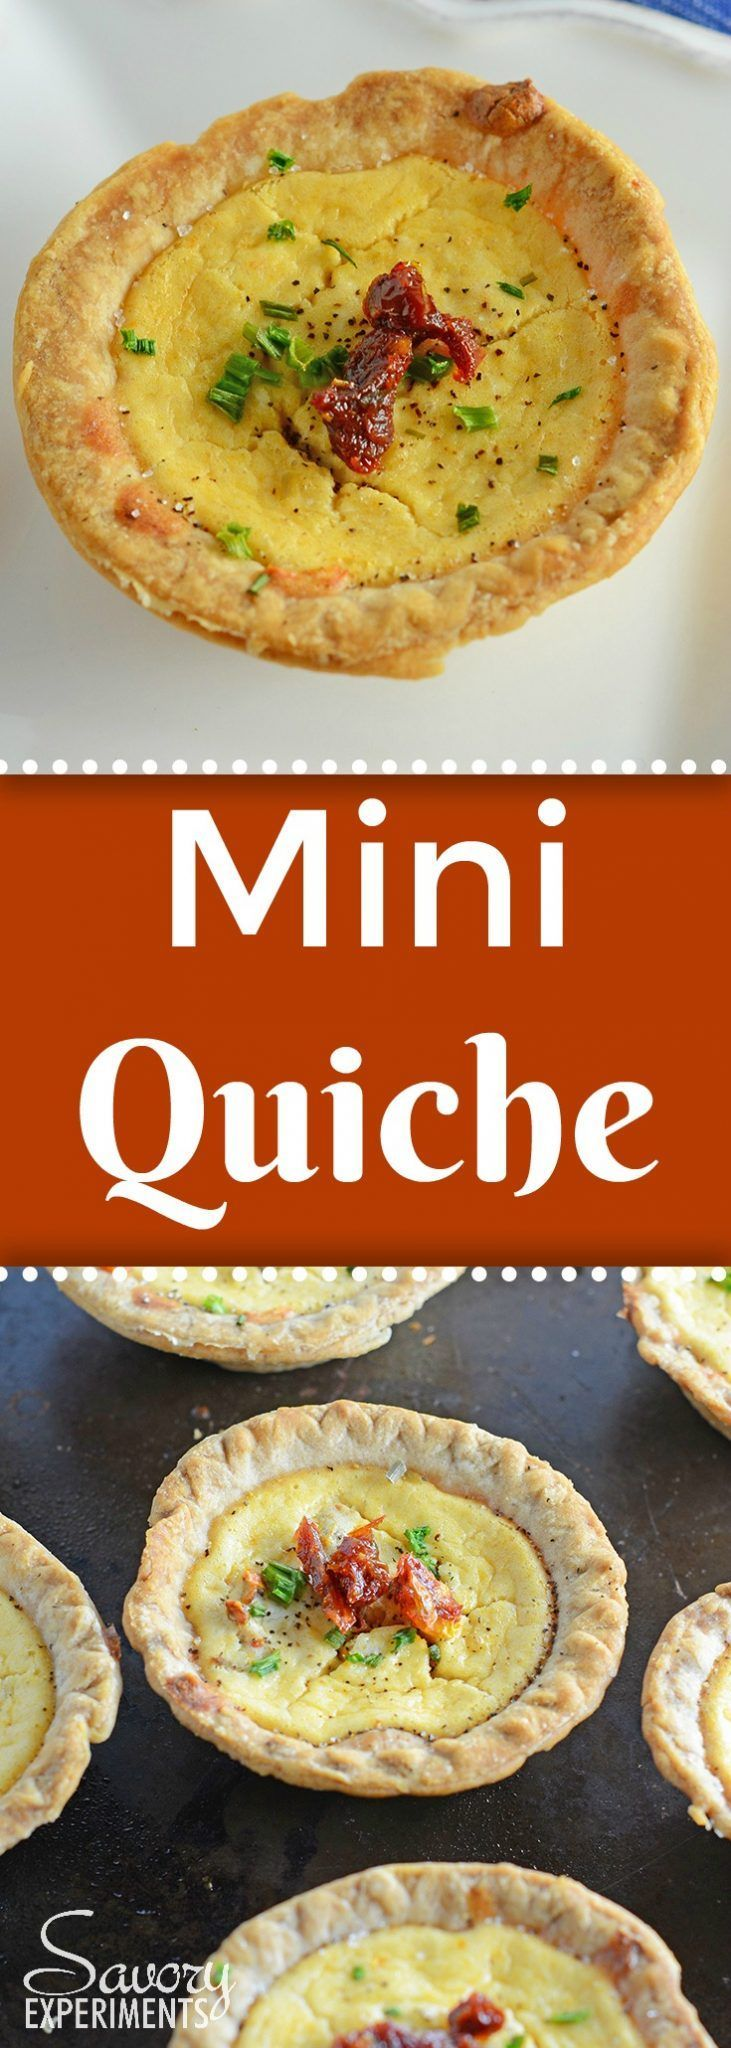 Make easy and delicious individual mini quiche! Goat cheese quiche are eggs whipped with goat cheese, sun dried tomatoes, pine nuts and Parmesan cheese! #miniquiche #vegetarianquicherecipe #goatcheesequiche www.savoryexperiments.com